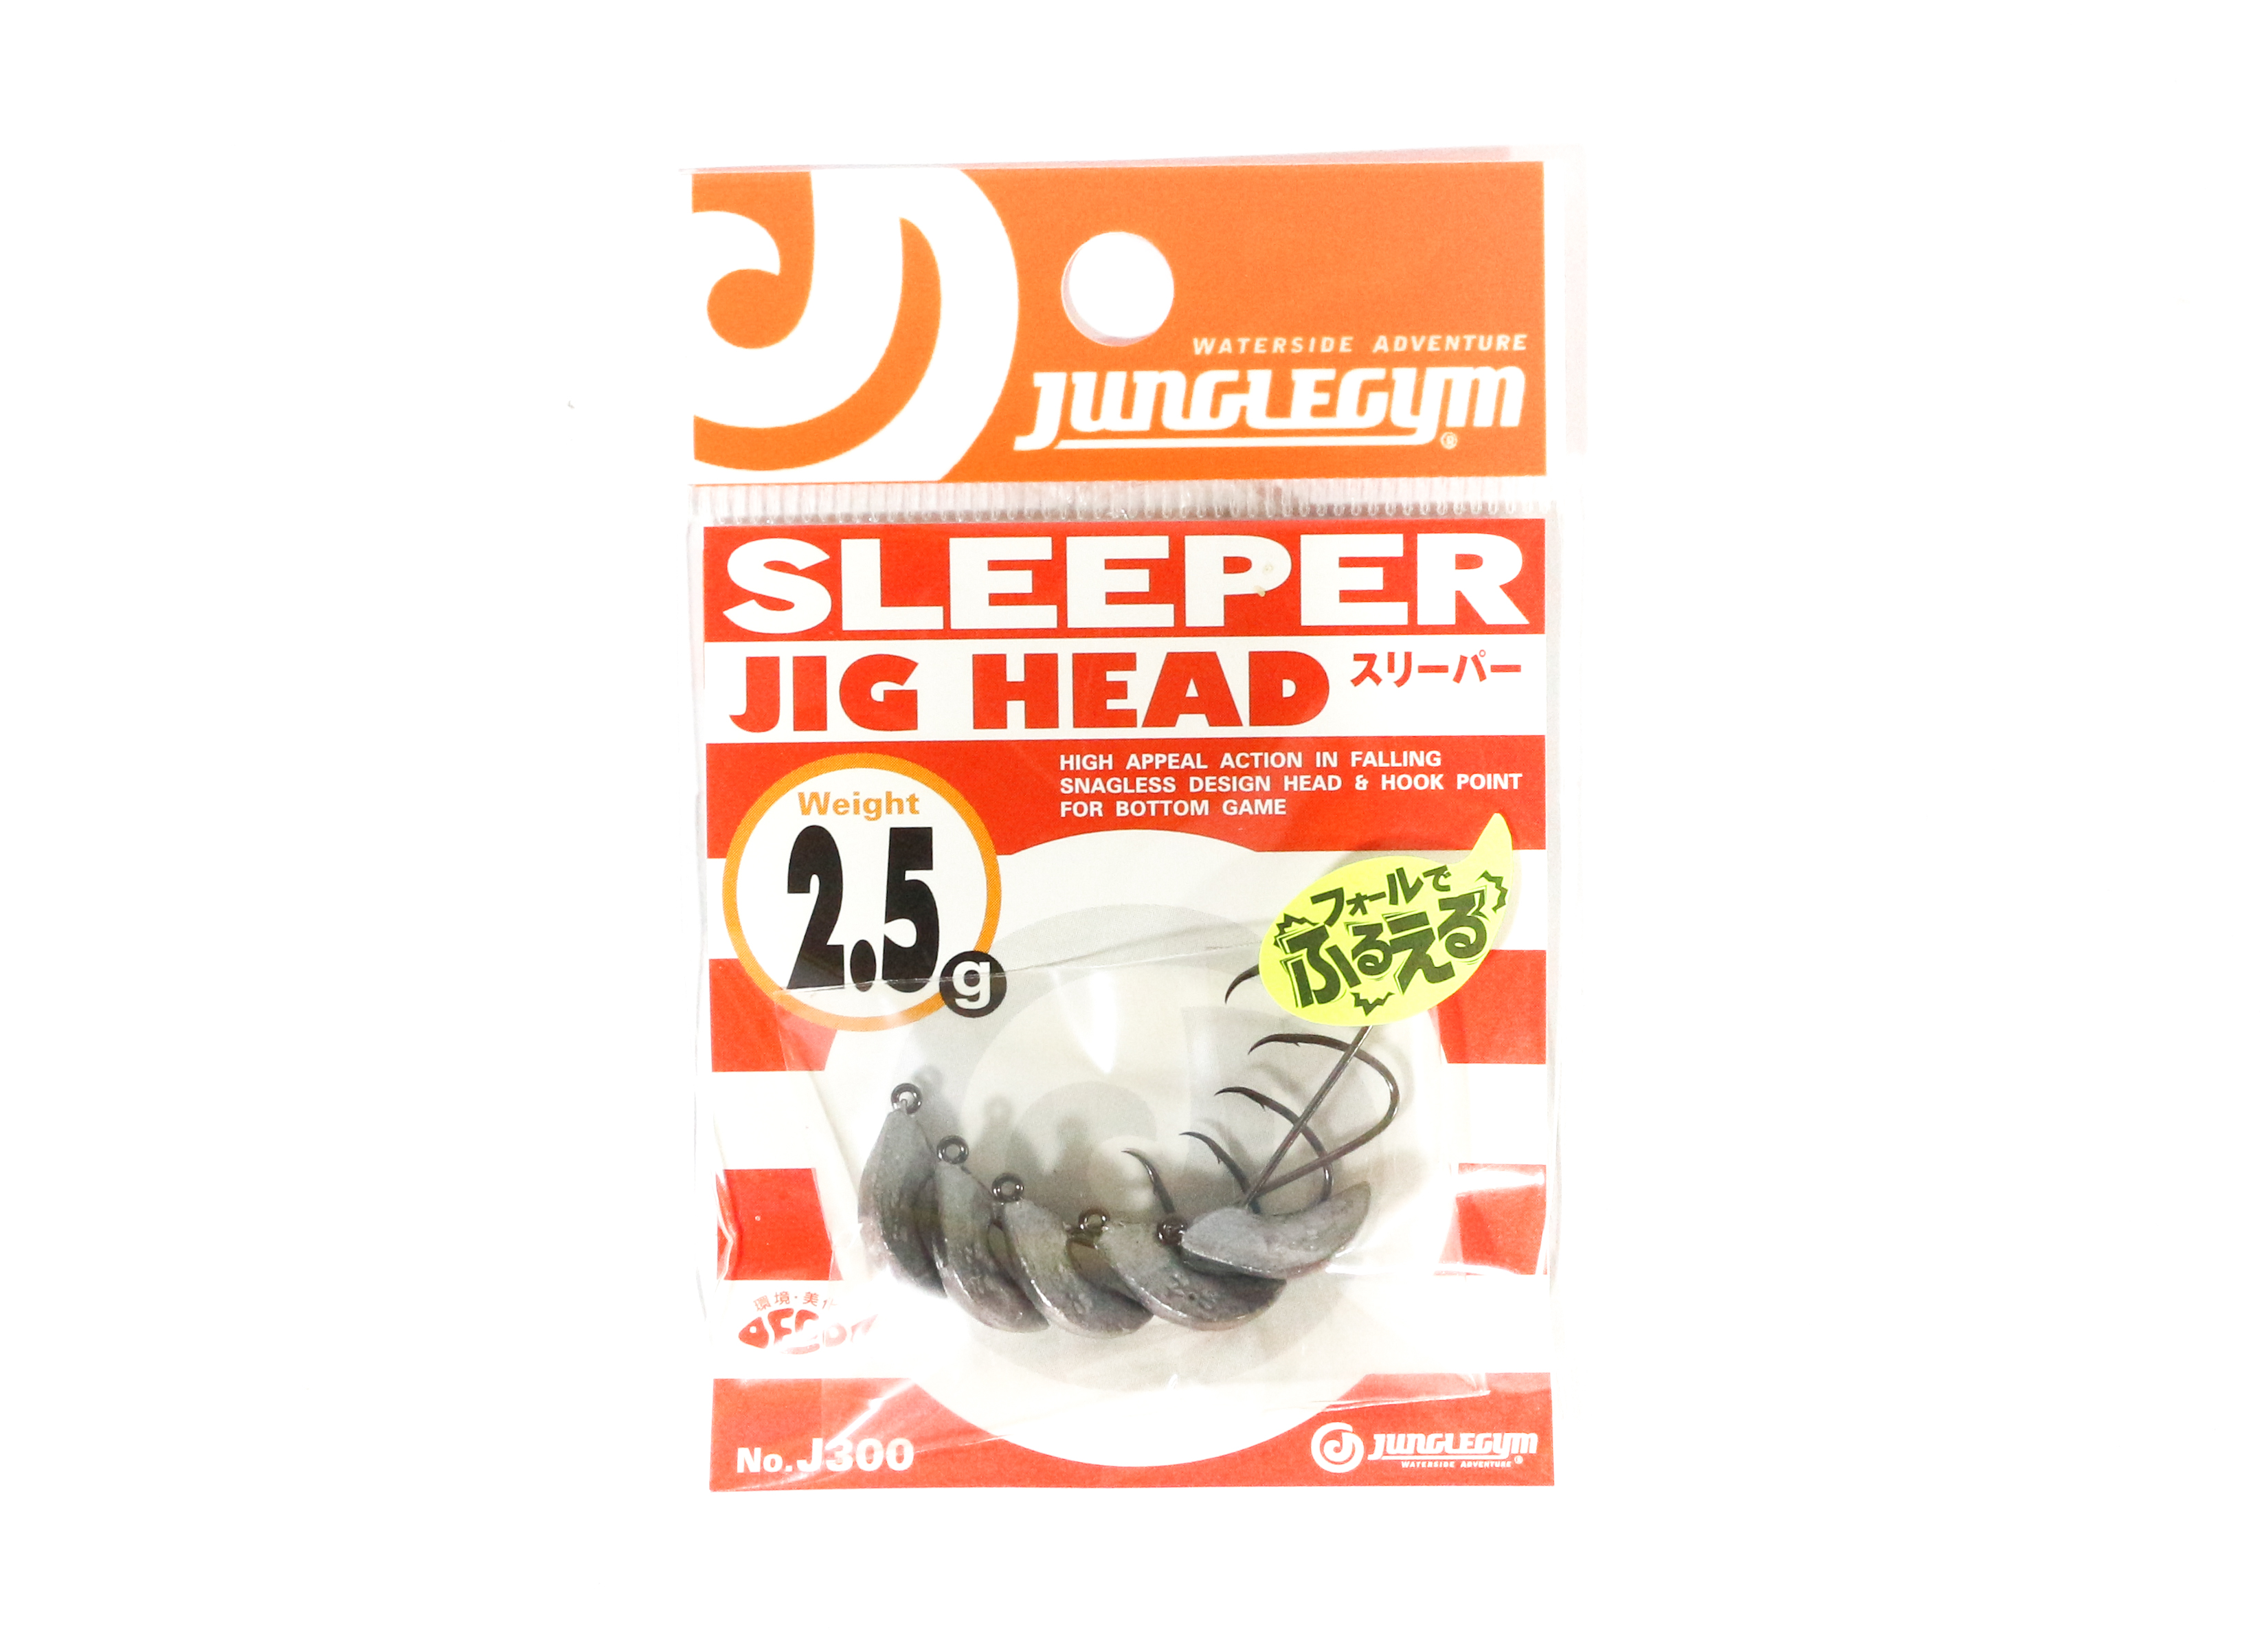 Jungle Gym J300 Jig Head Sleeper 2.5 grams Hook Size 5 (0612)